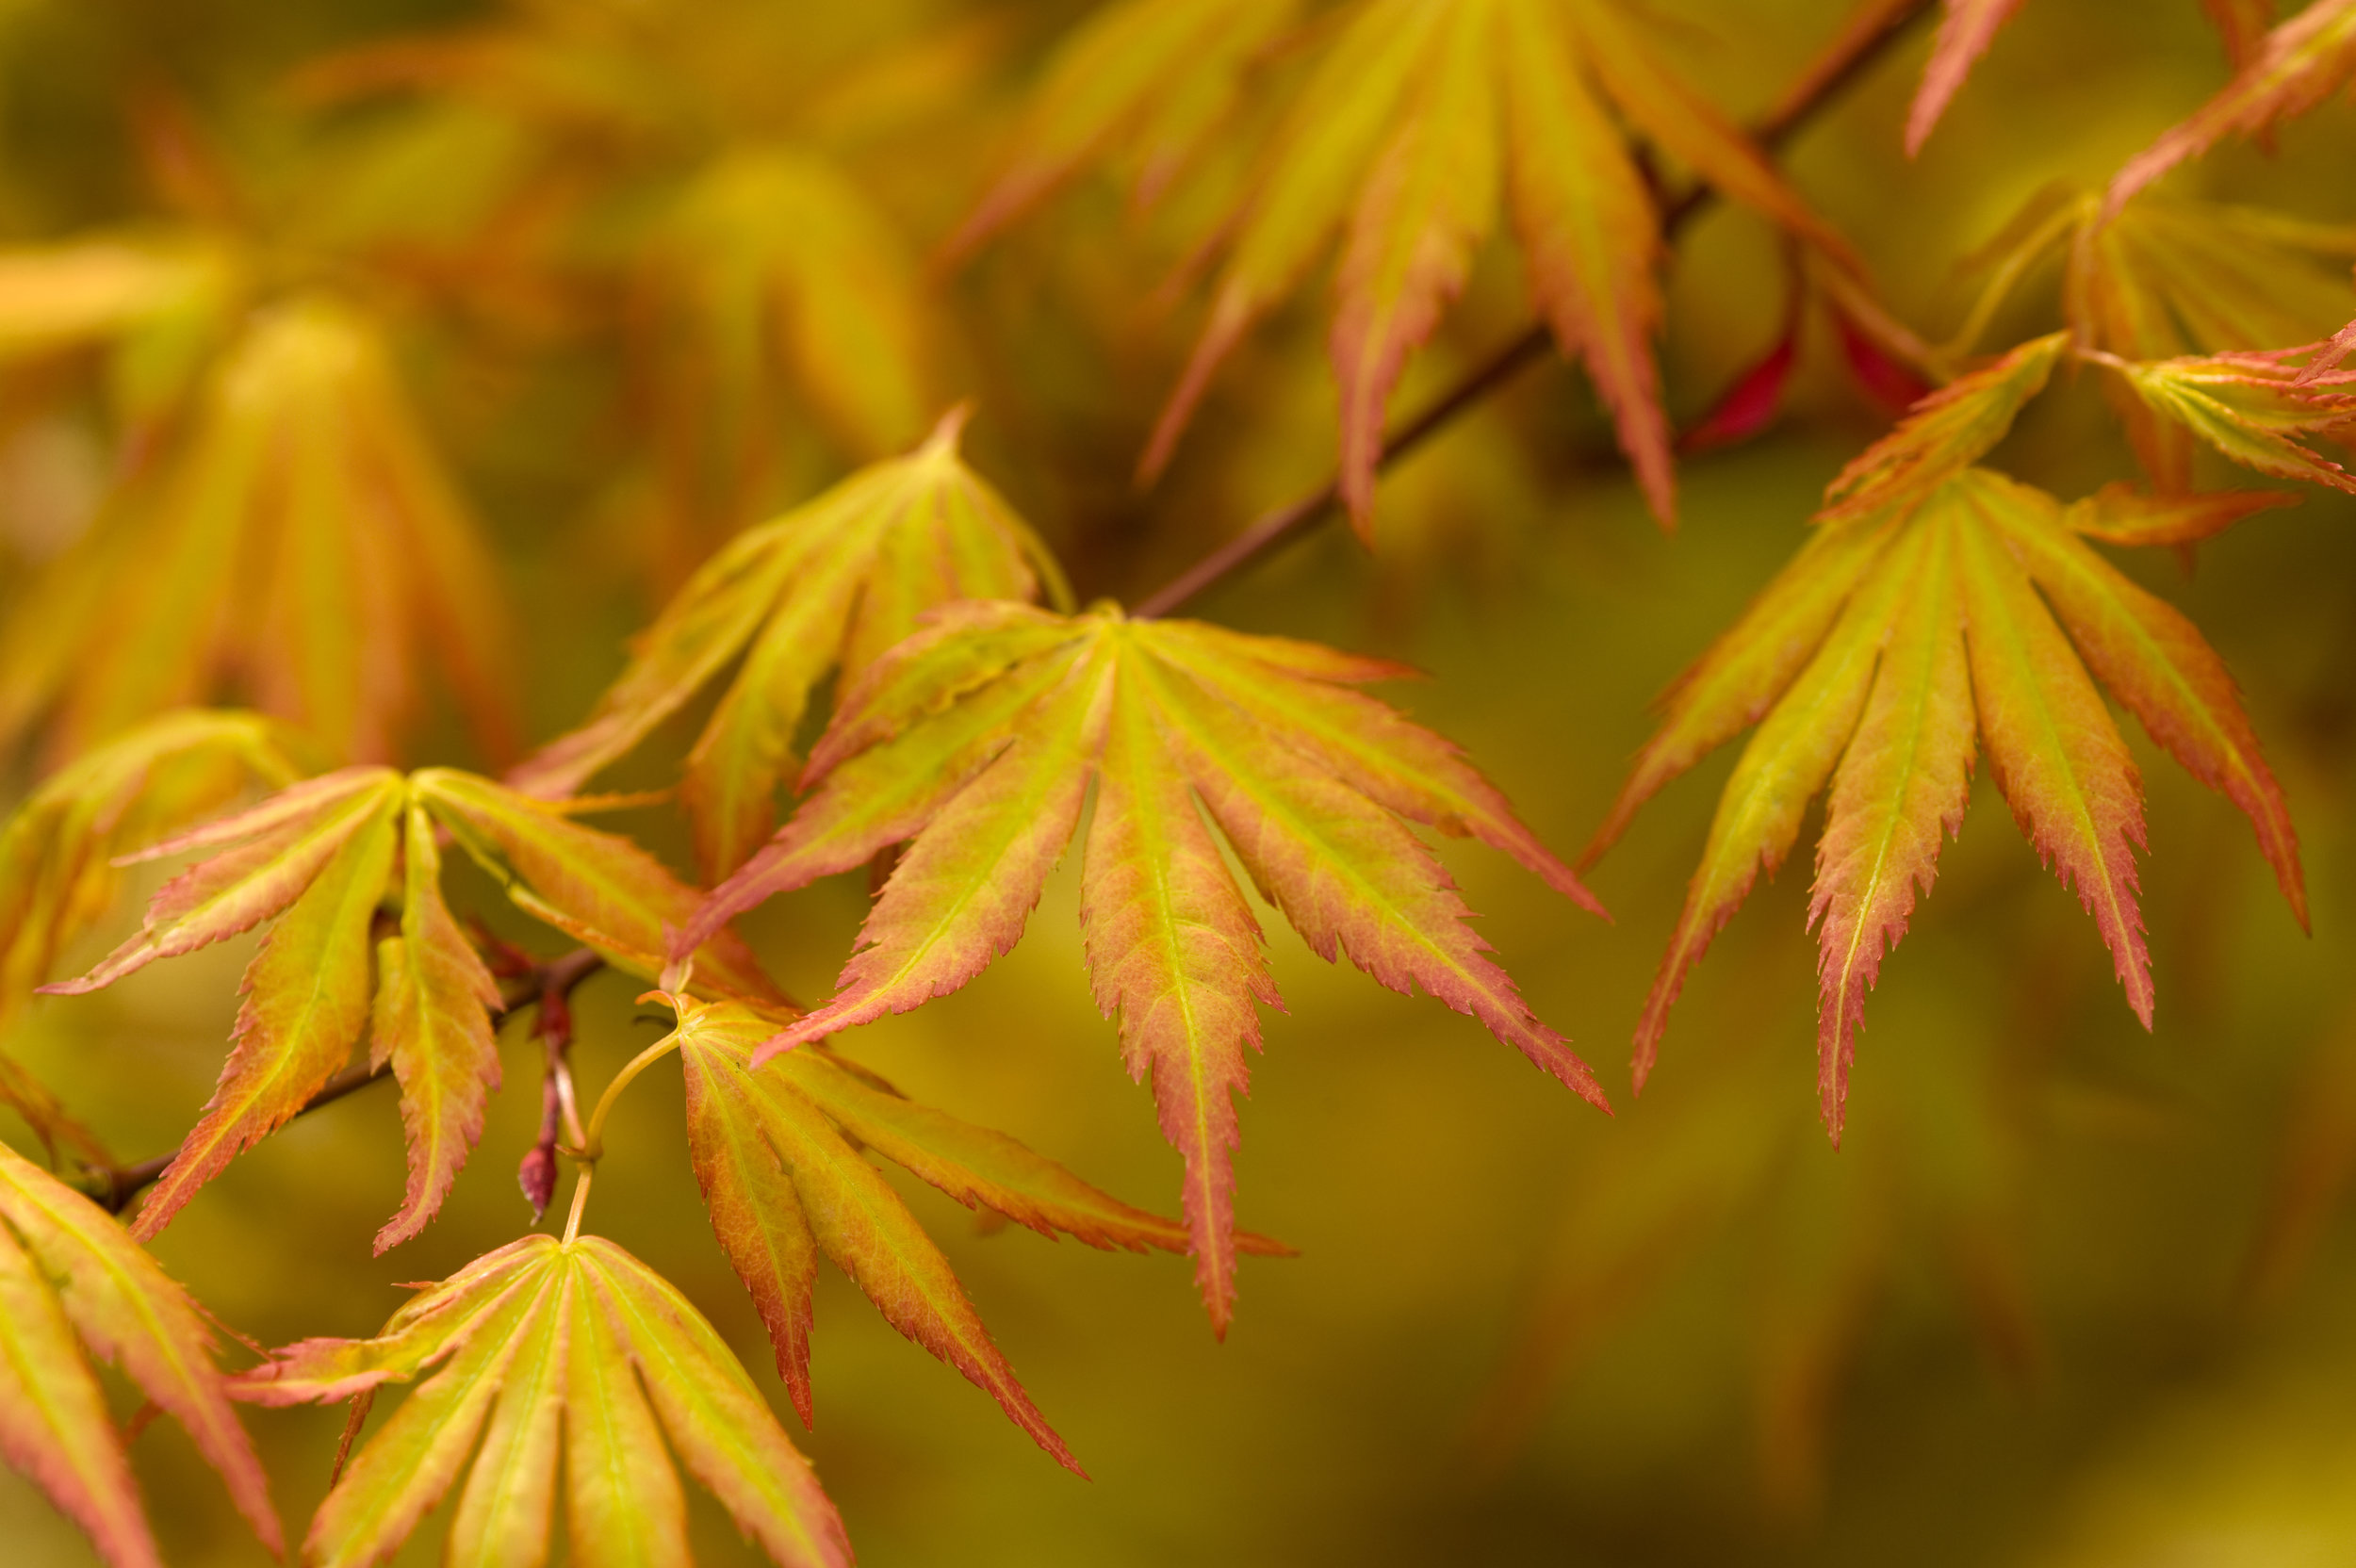 WITH DIVERSITY OF FORM, COLOR AND SIZE, THERE'S A JAPANESE MAPLE TO FIT NEARLY EVERY LANDSCAPE. -